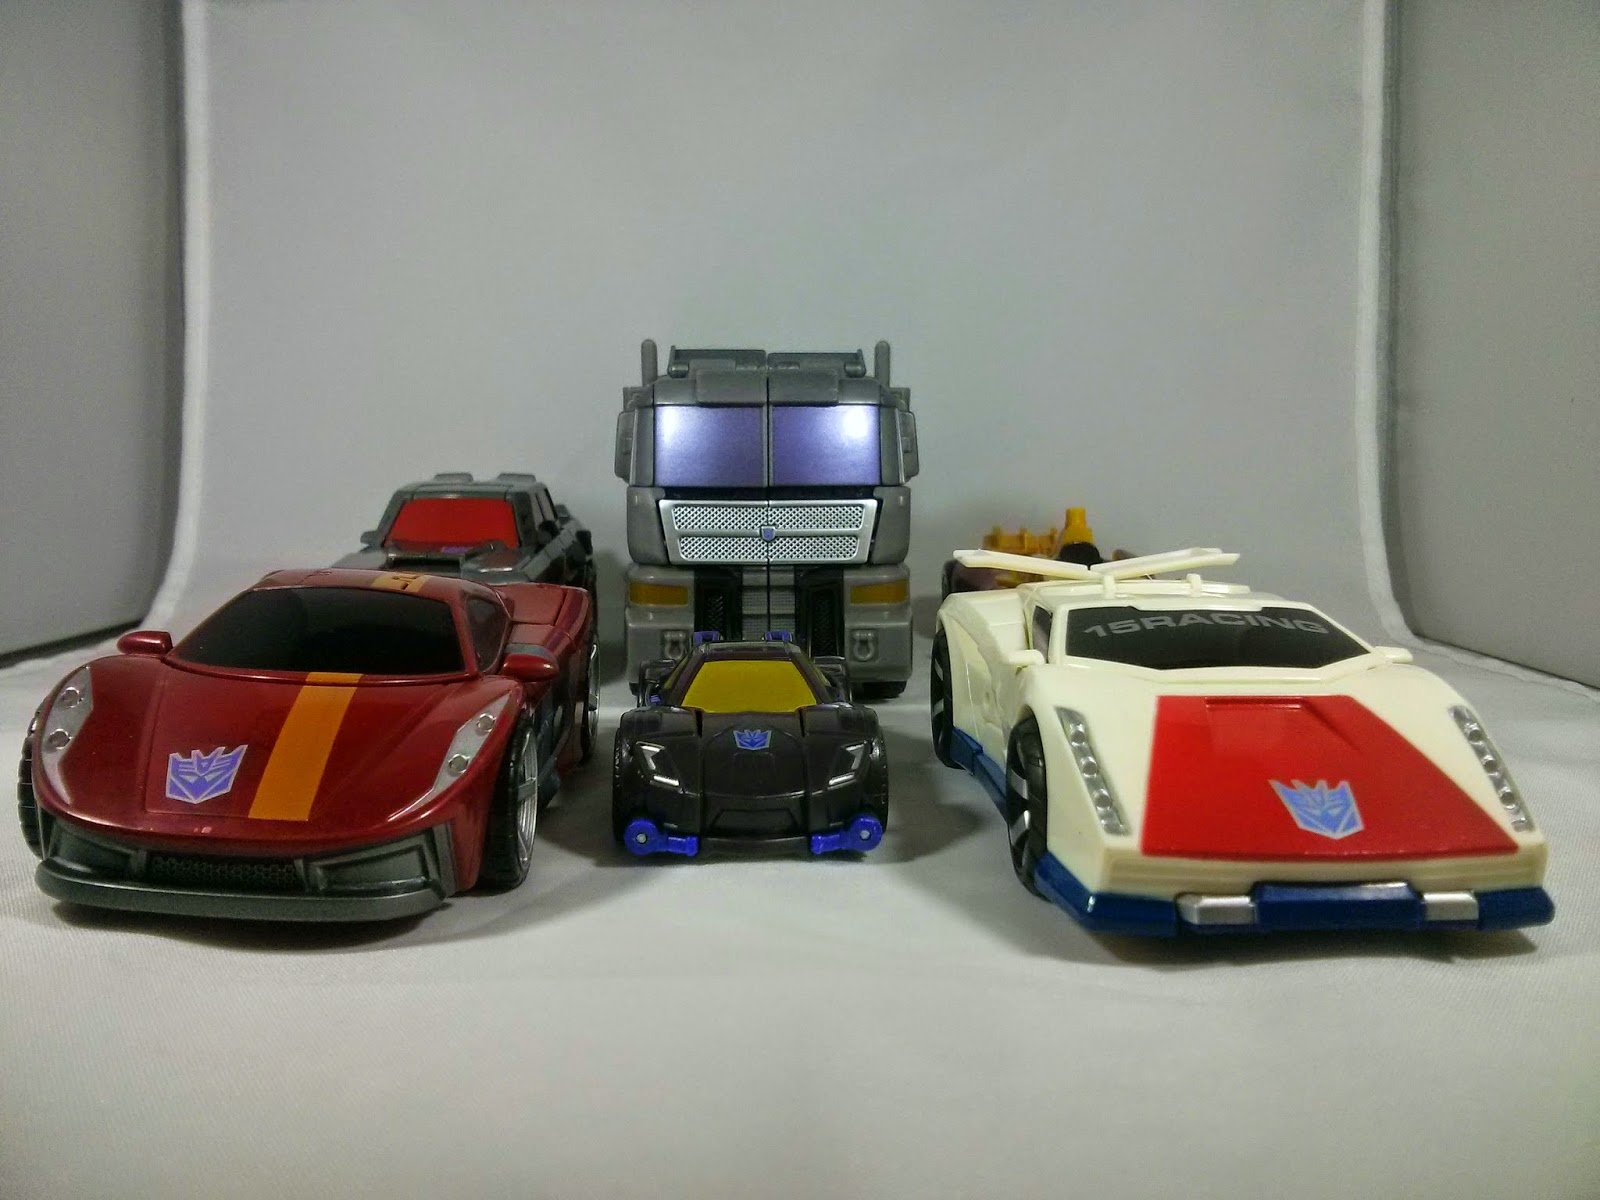 a group shot of all of the cars